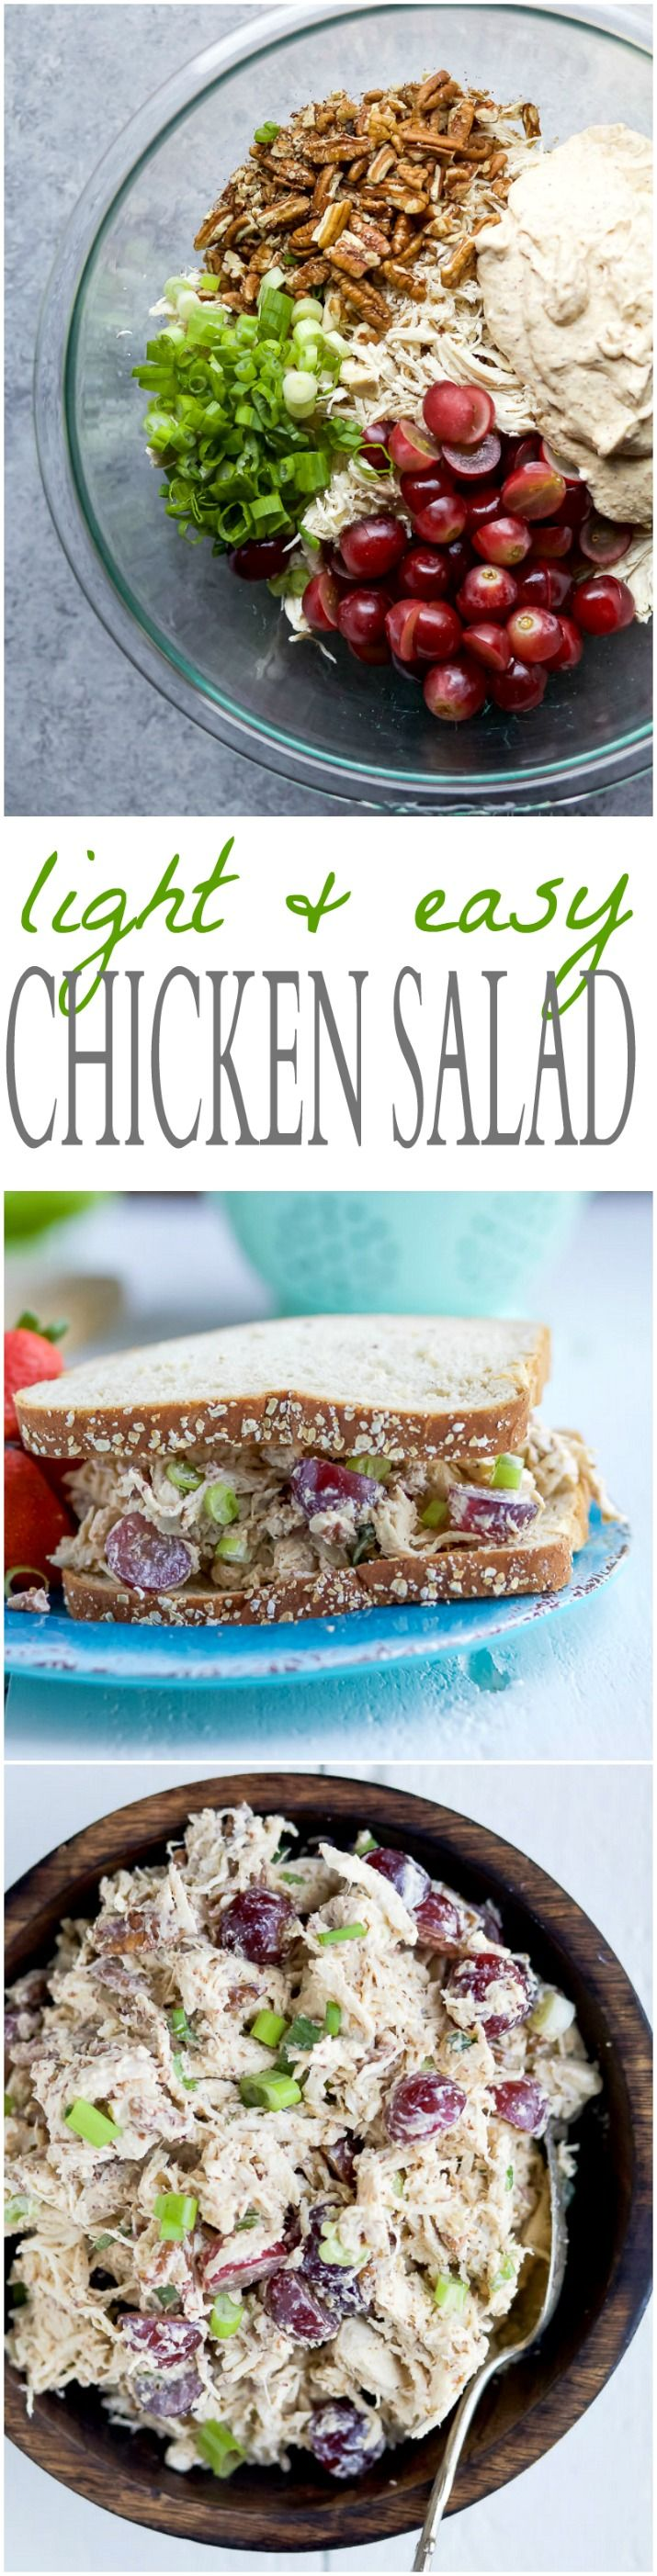 100 chicken salad recipes on pinterest best chicken salad recipe matthew lyons carla hall. Black Bedroom Furniture Sets. Home Design Ideas